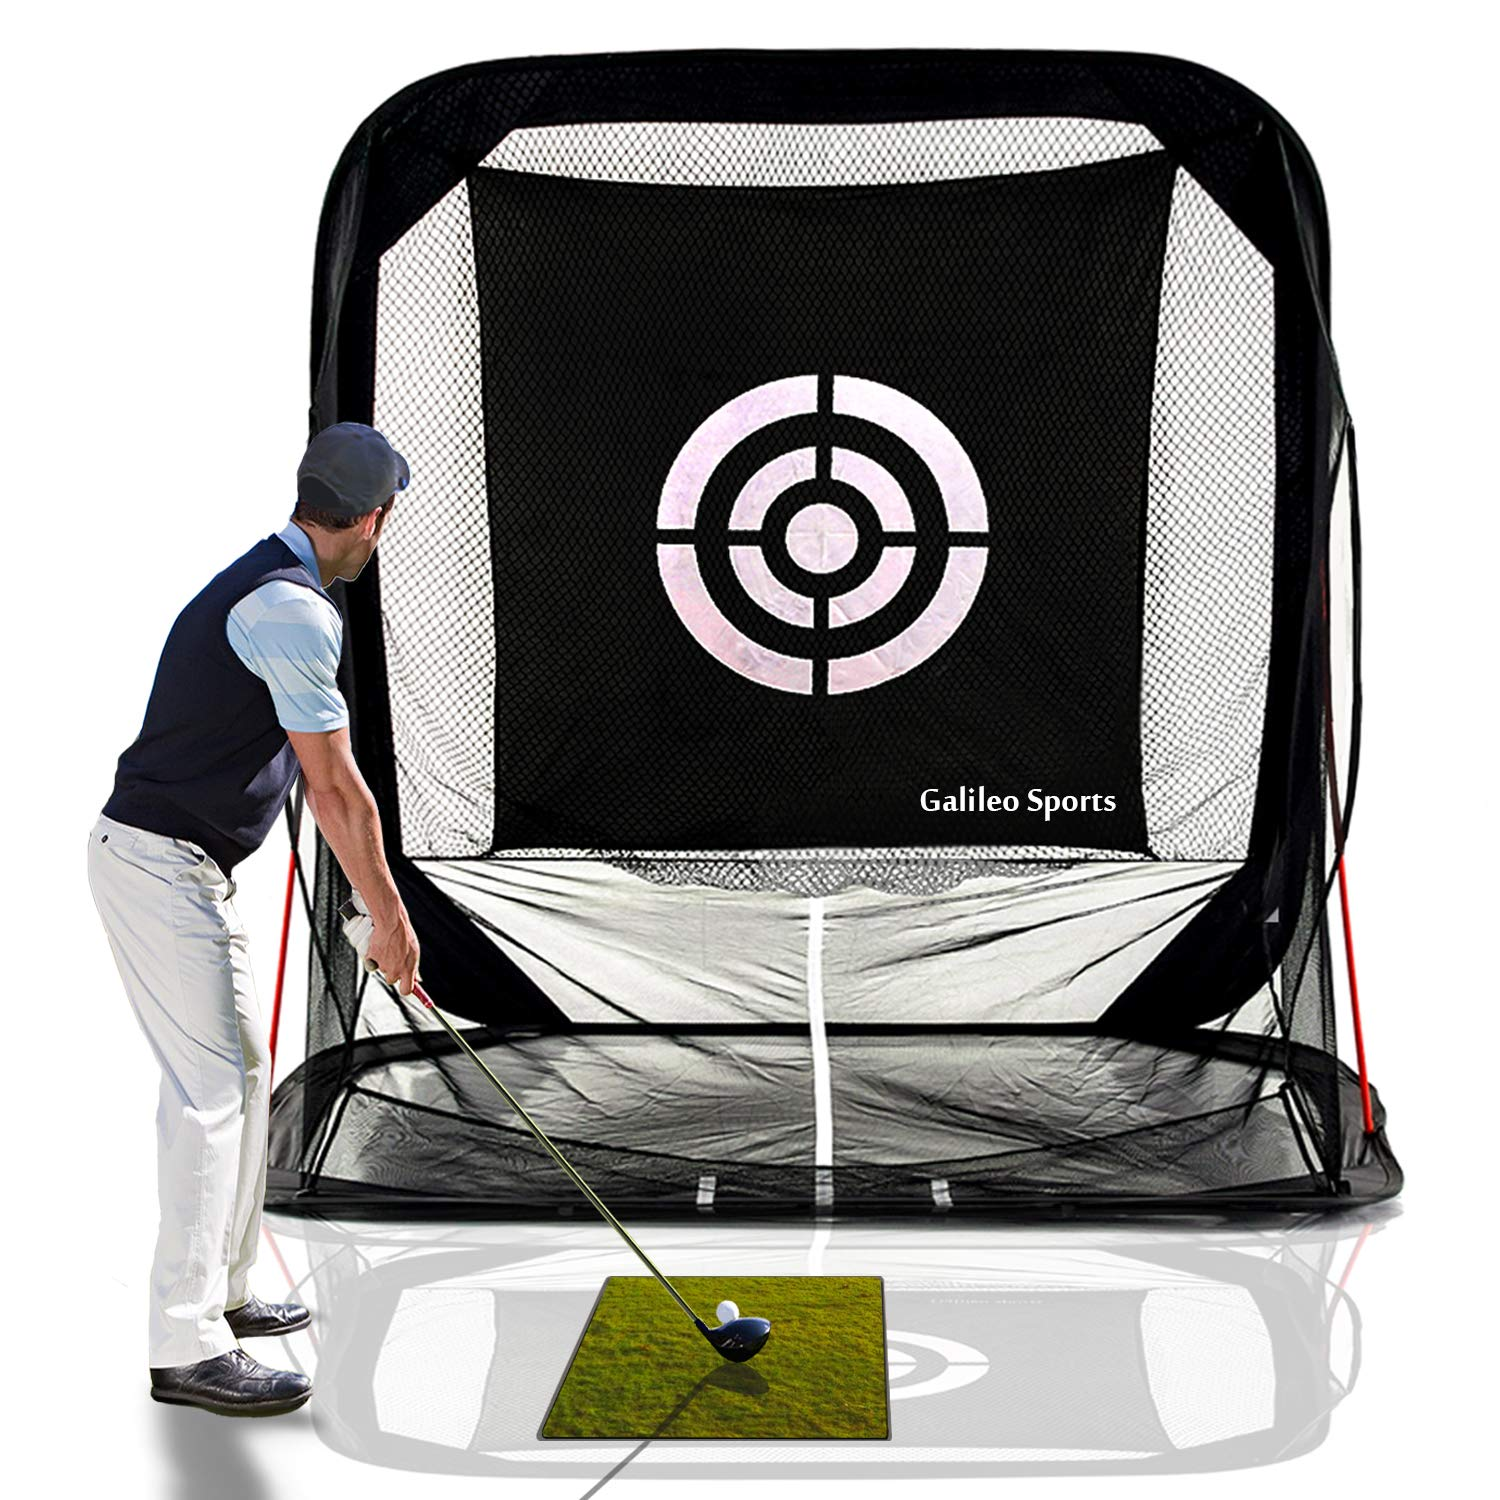 Galileo Golf Nets Golf Hitting Net Training Aid Driving Range 8'(L) X7'(H) X7'(W) Pop Up Automatic Ball Return for Backyard Driving with Target&Carry Bag